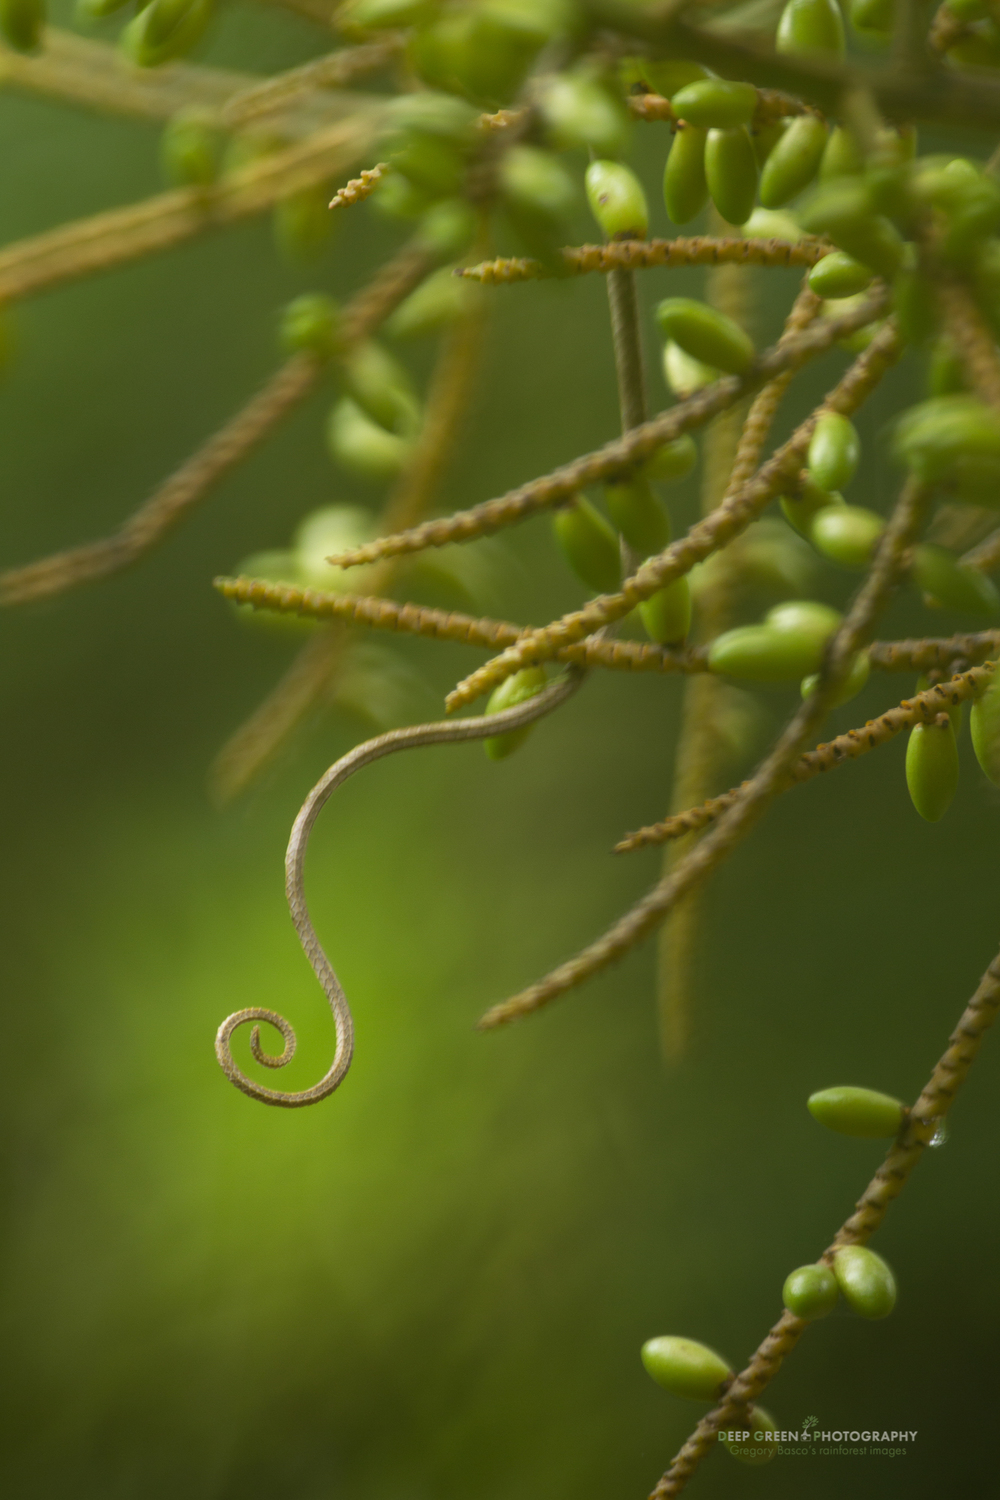 The tail of a canopy lizard (Polychrus gutturosus) pokes out from palm tree fruits in a lowland rainforest on the Caribbean slope of Costa Rica.